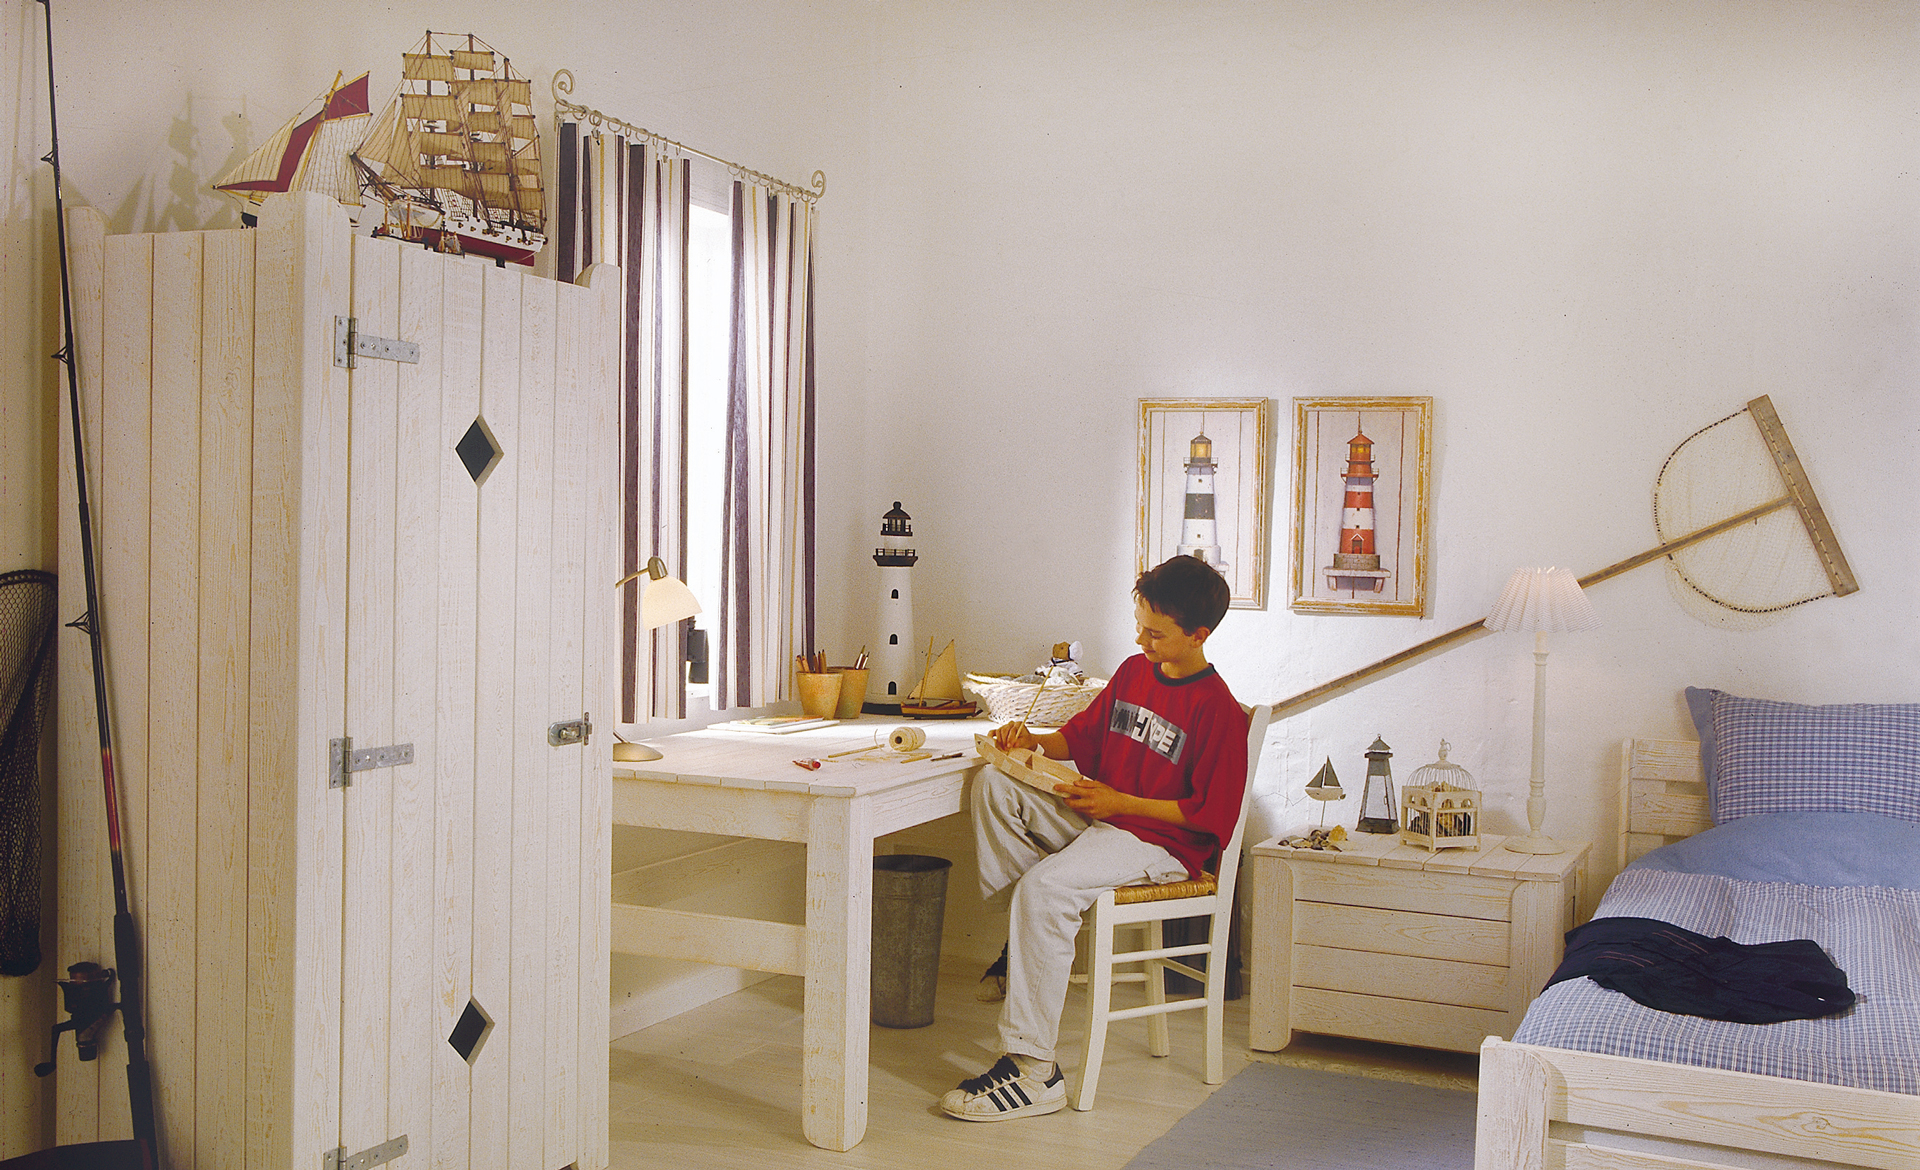 kinderzimmer einrichten holzarbeiten m bel. Black Bedroom Furniture Sets. Home Design Ideas